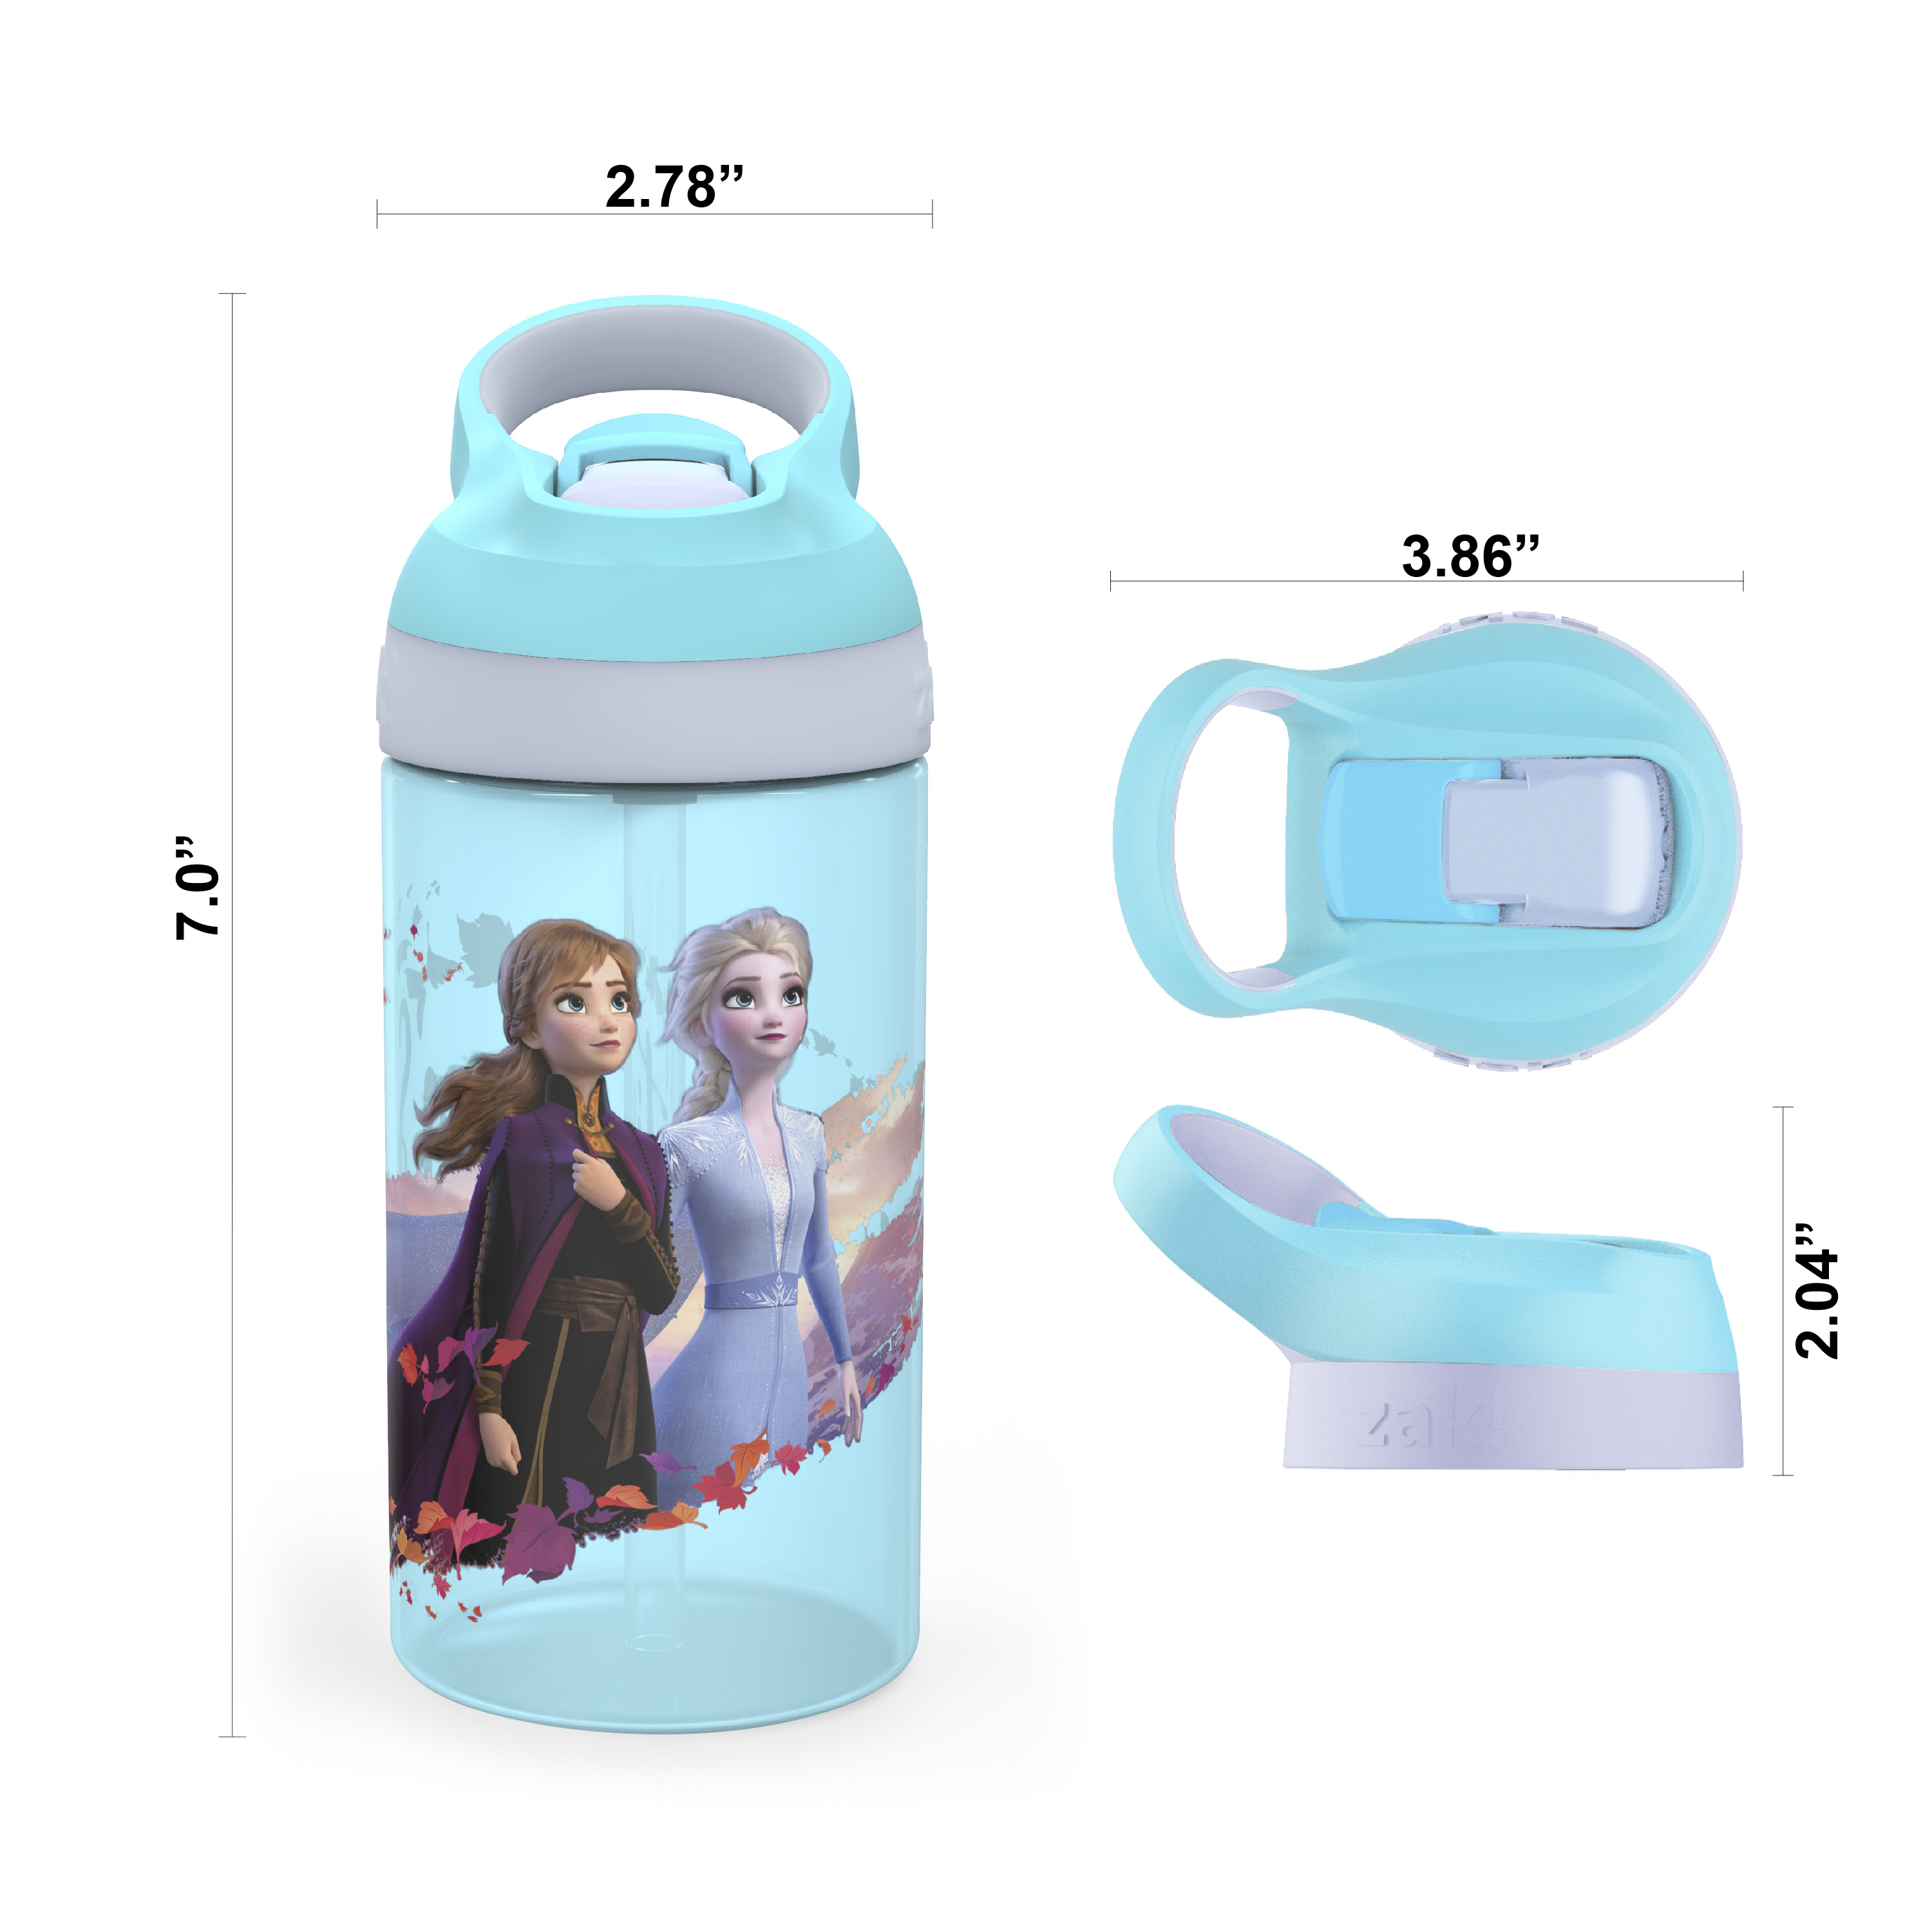 Disney Frozen 2 Movie Dinnerware Set, Anna and Elsa, 5-piece set slideshow image 5